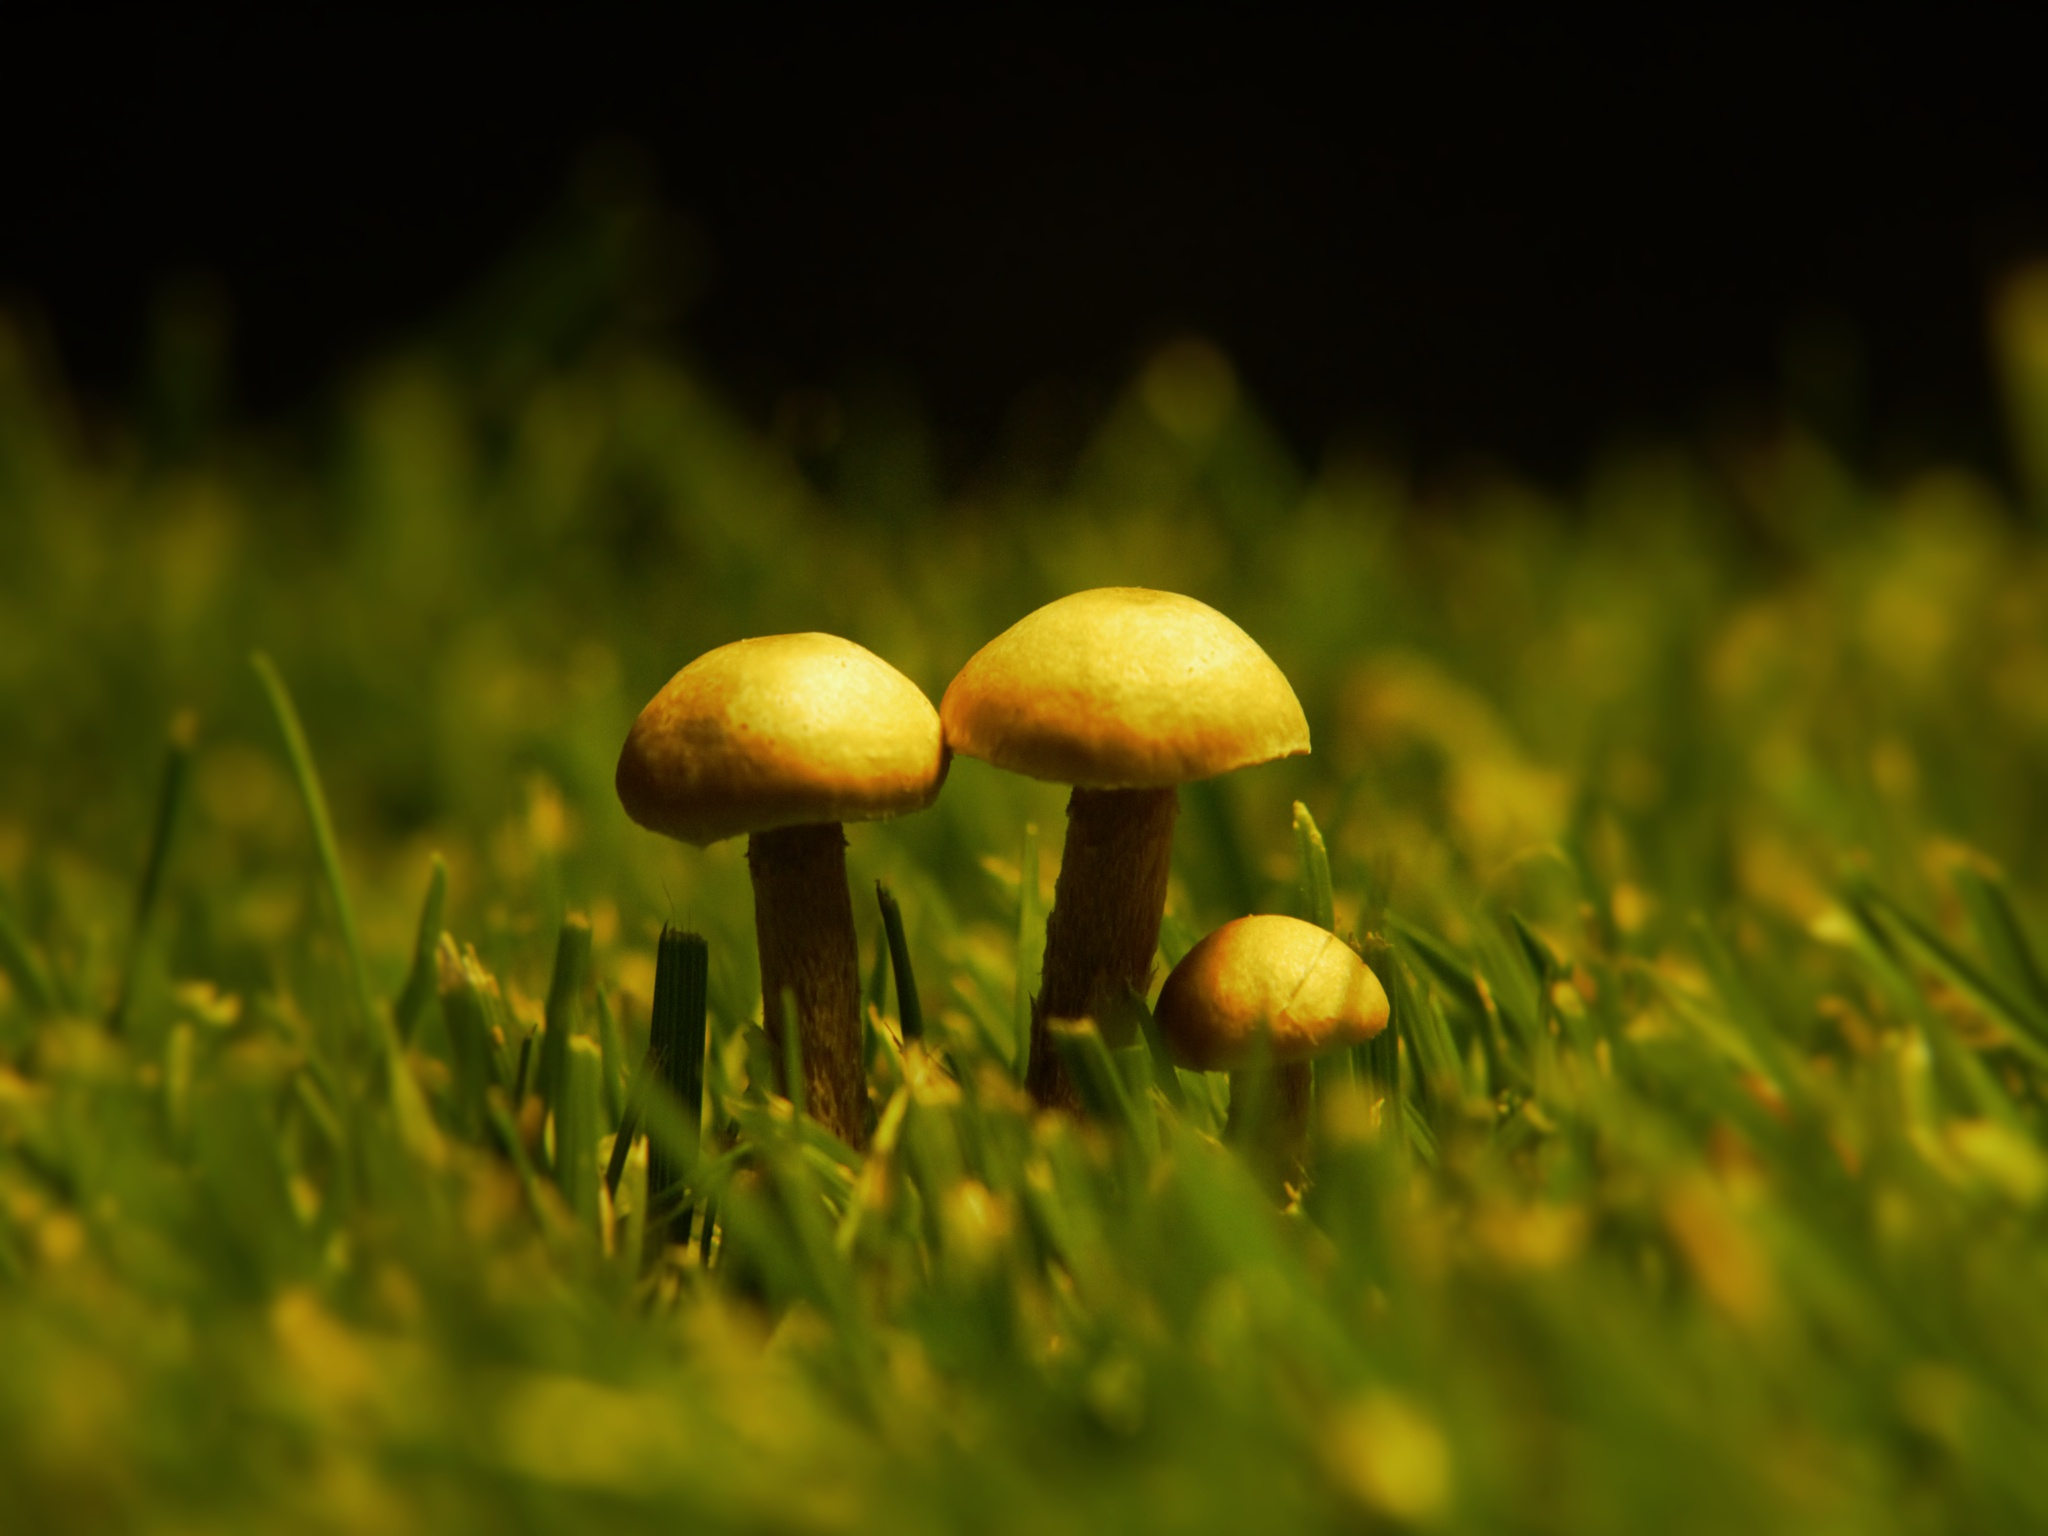 Three little Shrooms by Marco Kerp